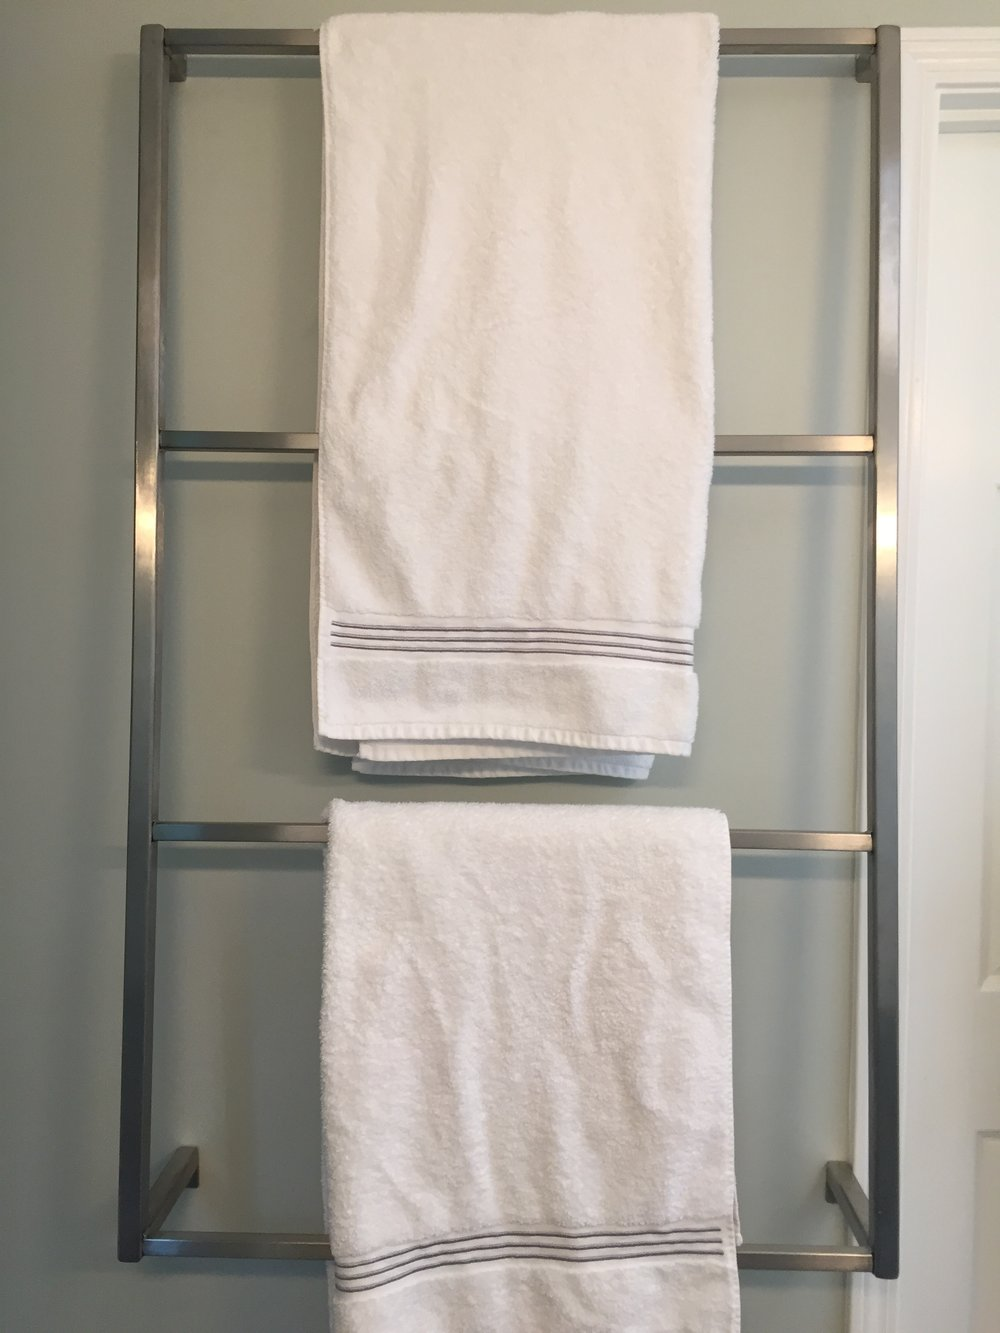 Stainless Steel Towel Ladder